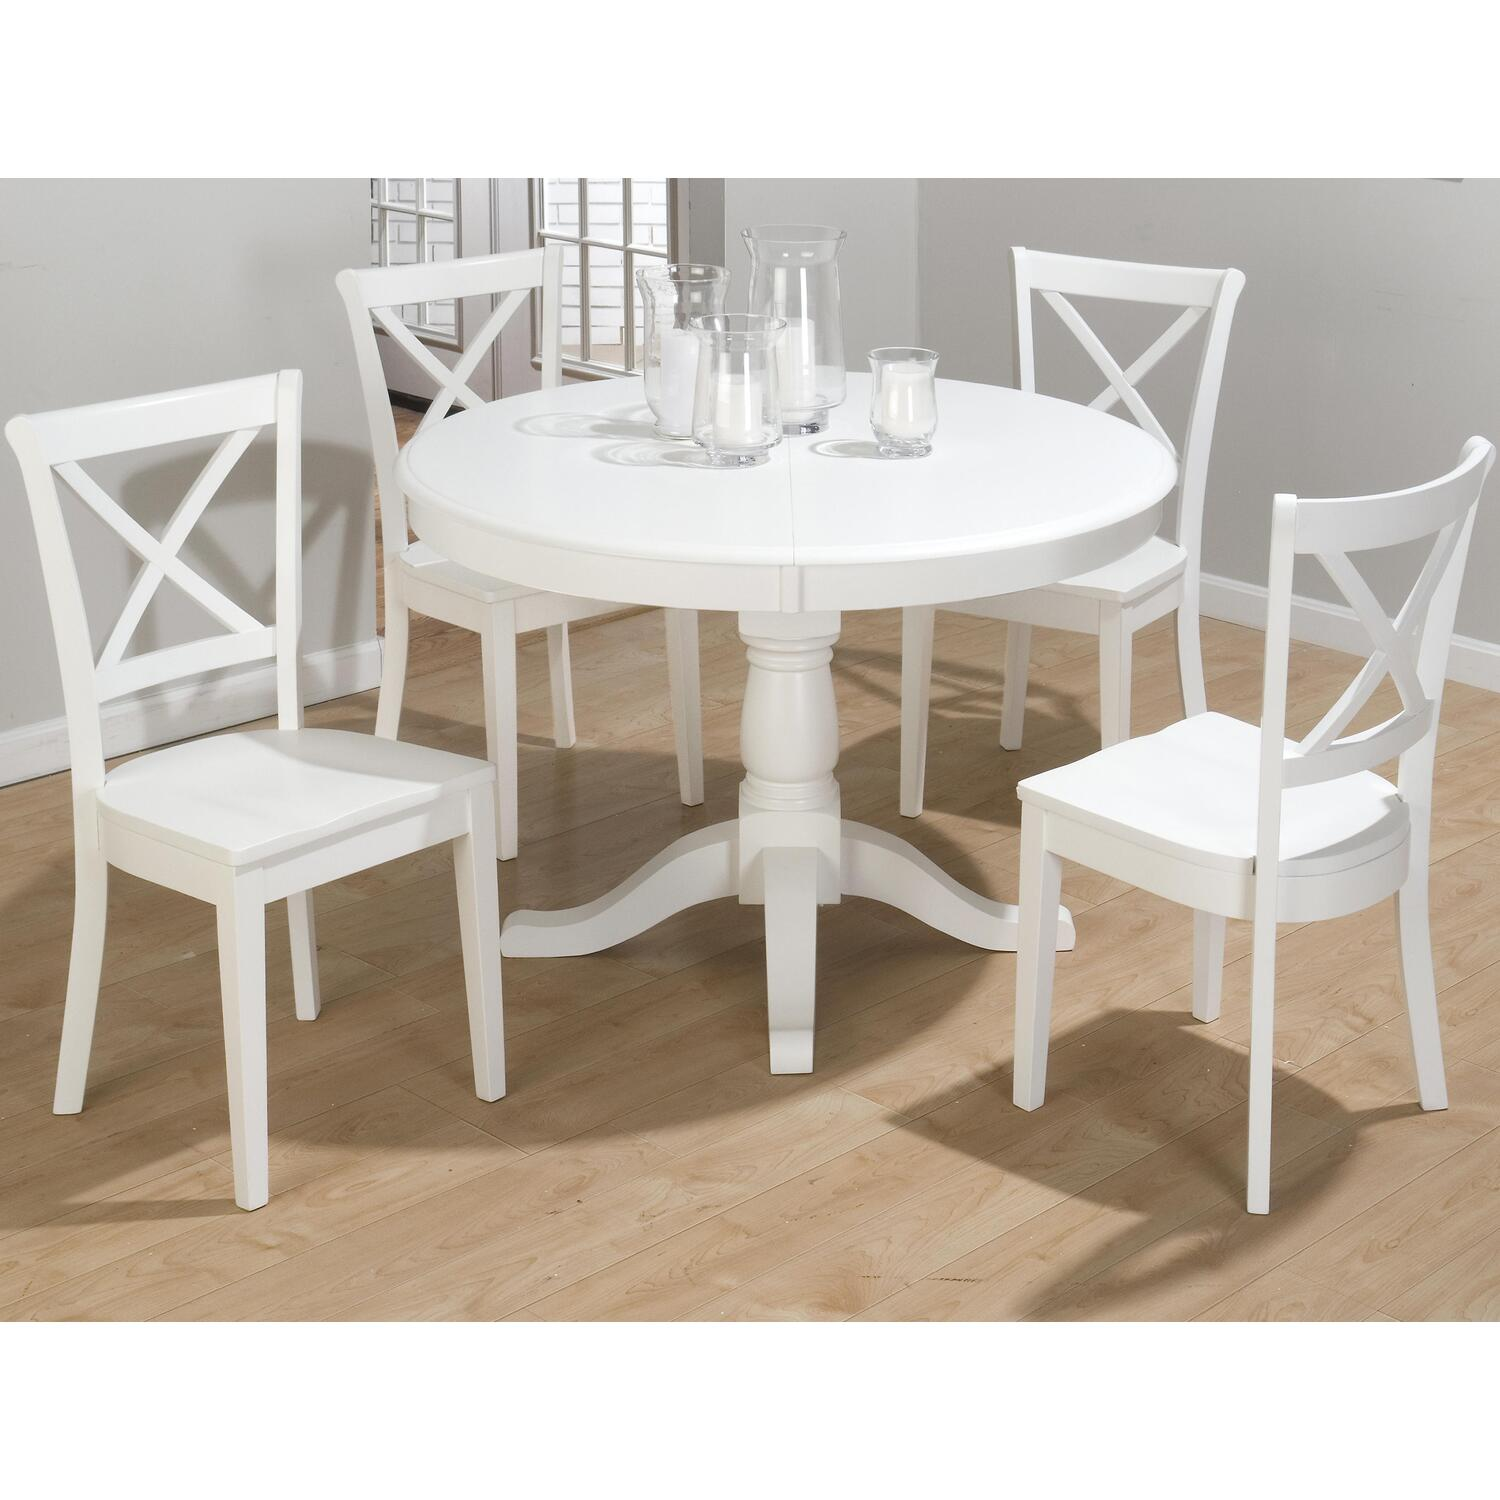 Jofran casper white finished 5 pc dining set by oj for Small white dining room sets